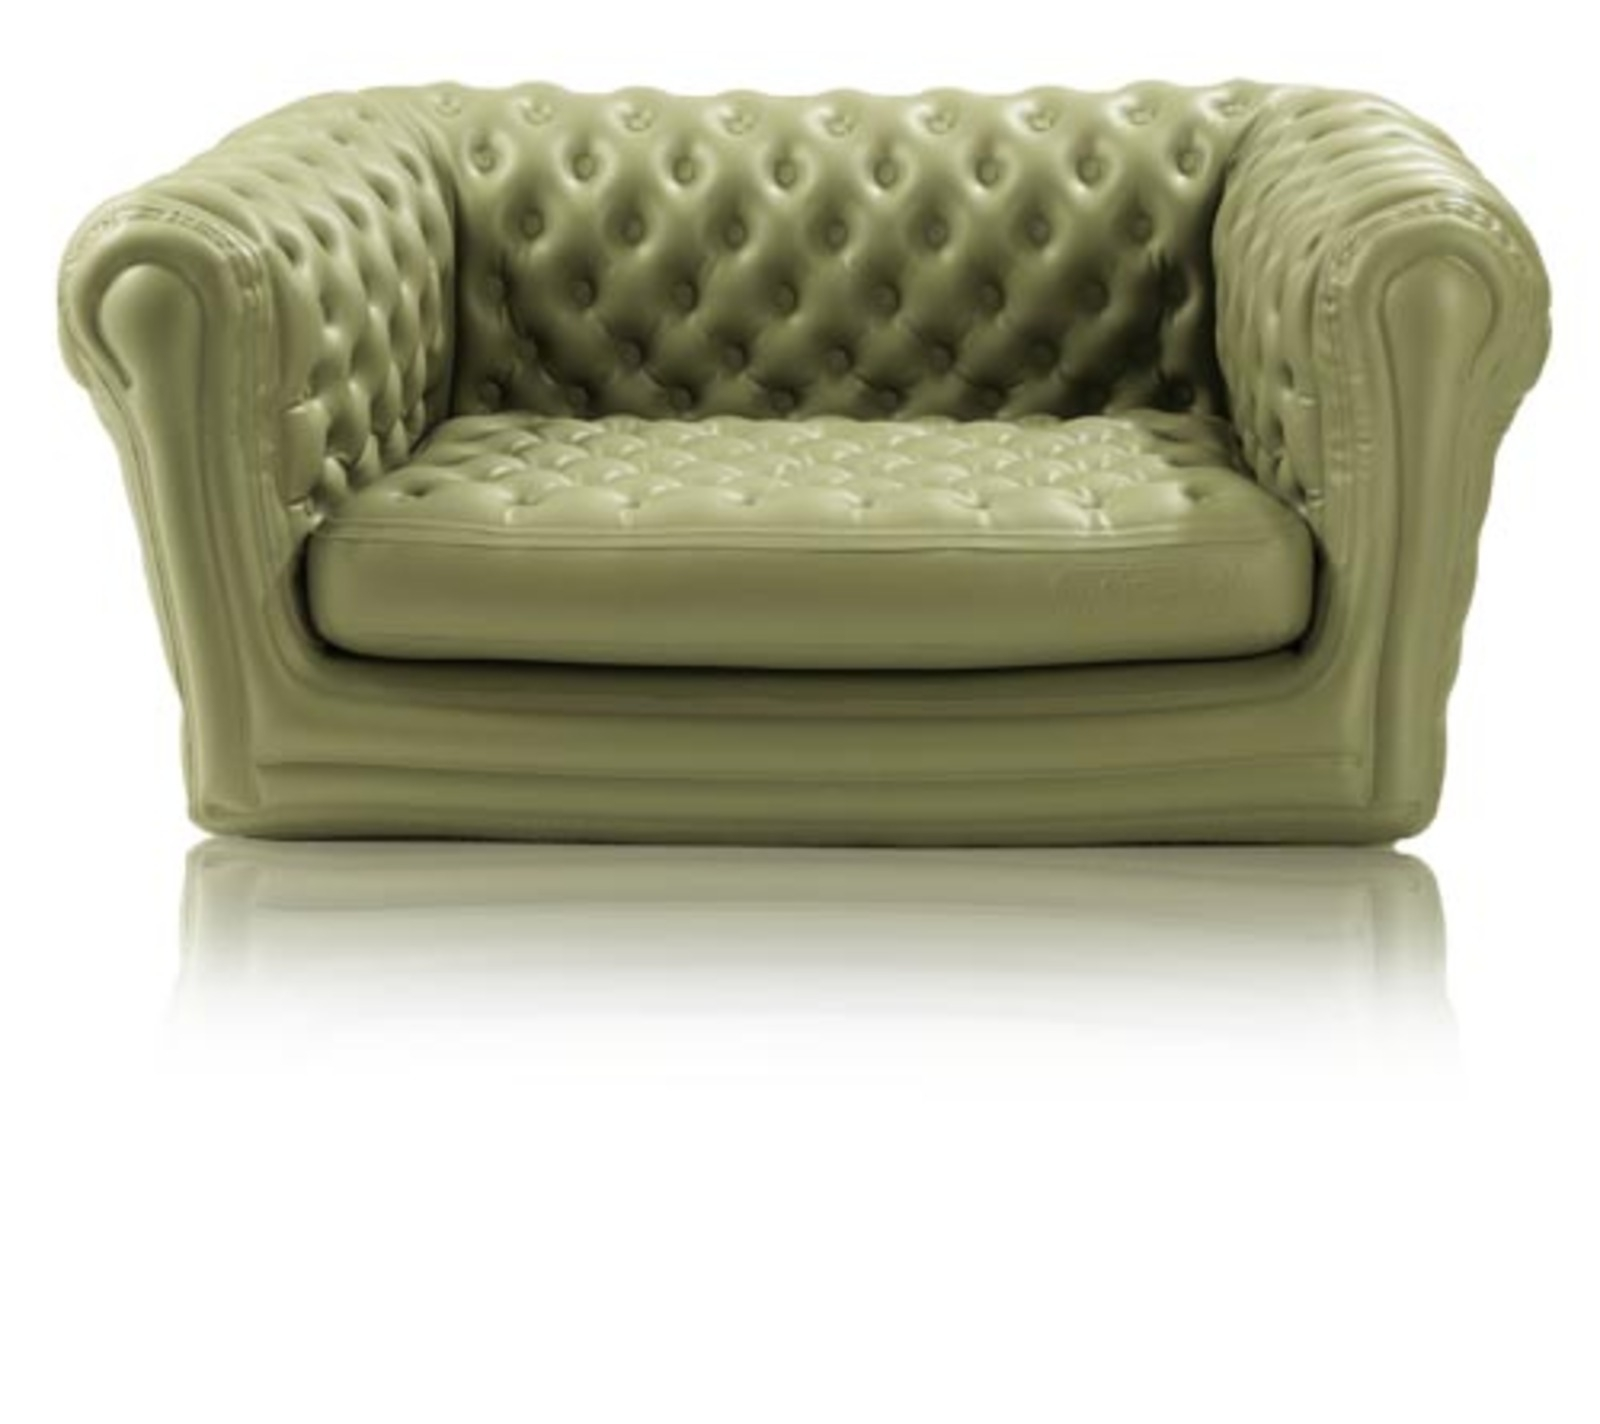 Blofield Inflatable Chesterfield Furniture Cool Hunting Intended For Inflatable Sofas And Chairs (Image 4 of 15)